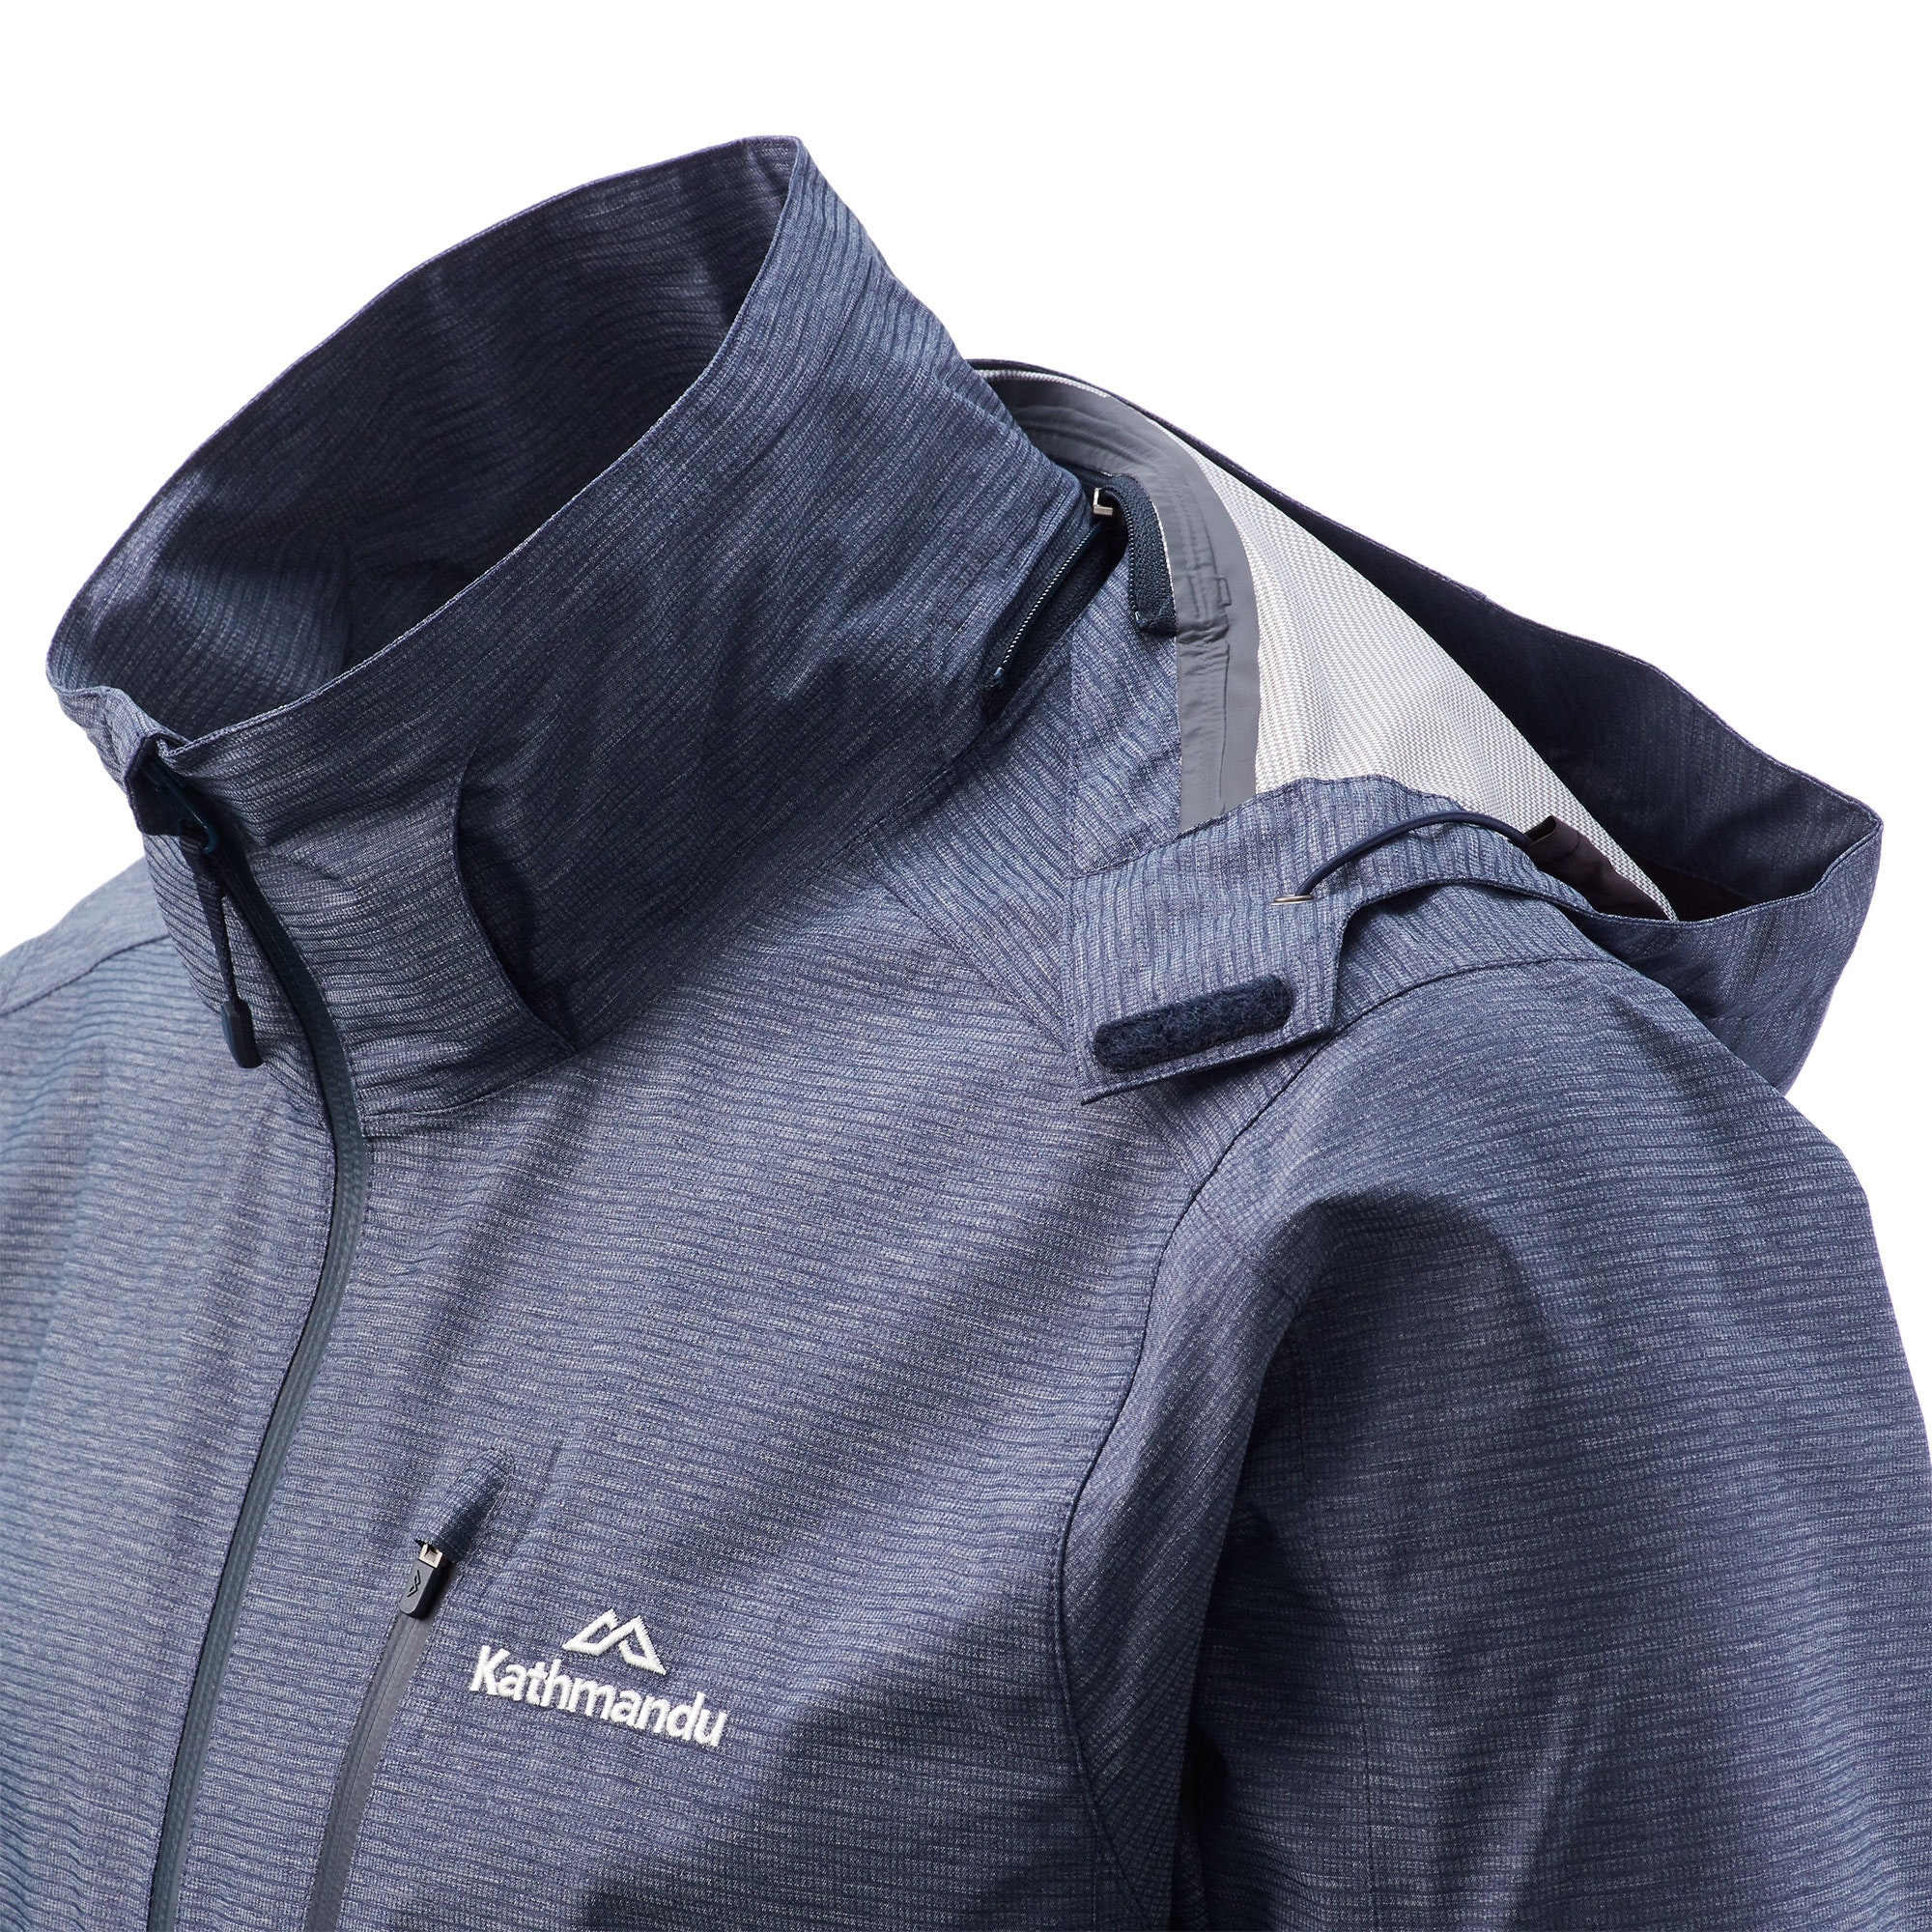 NEW-Kathmandu-Lawrence-Men-039-s-ngx-Windproof-Waterproof-Outdoor-Rain-Jacket-v2 thumbnail 15